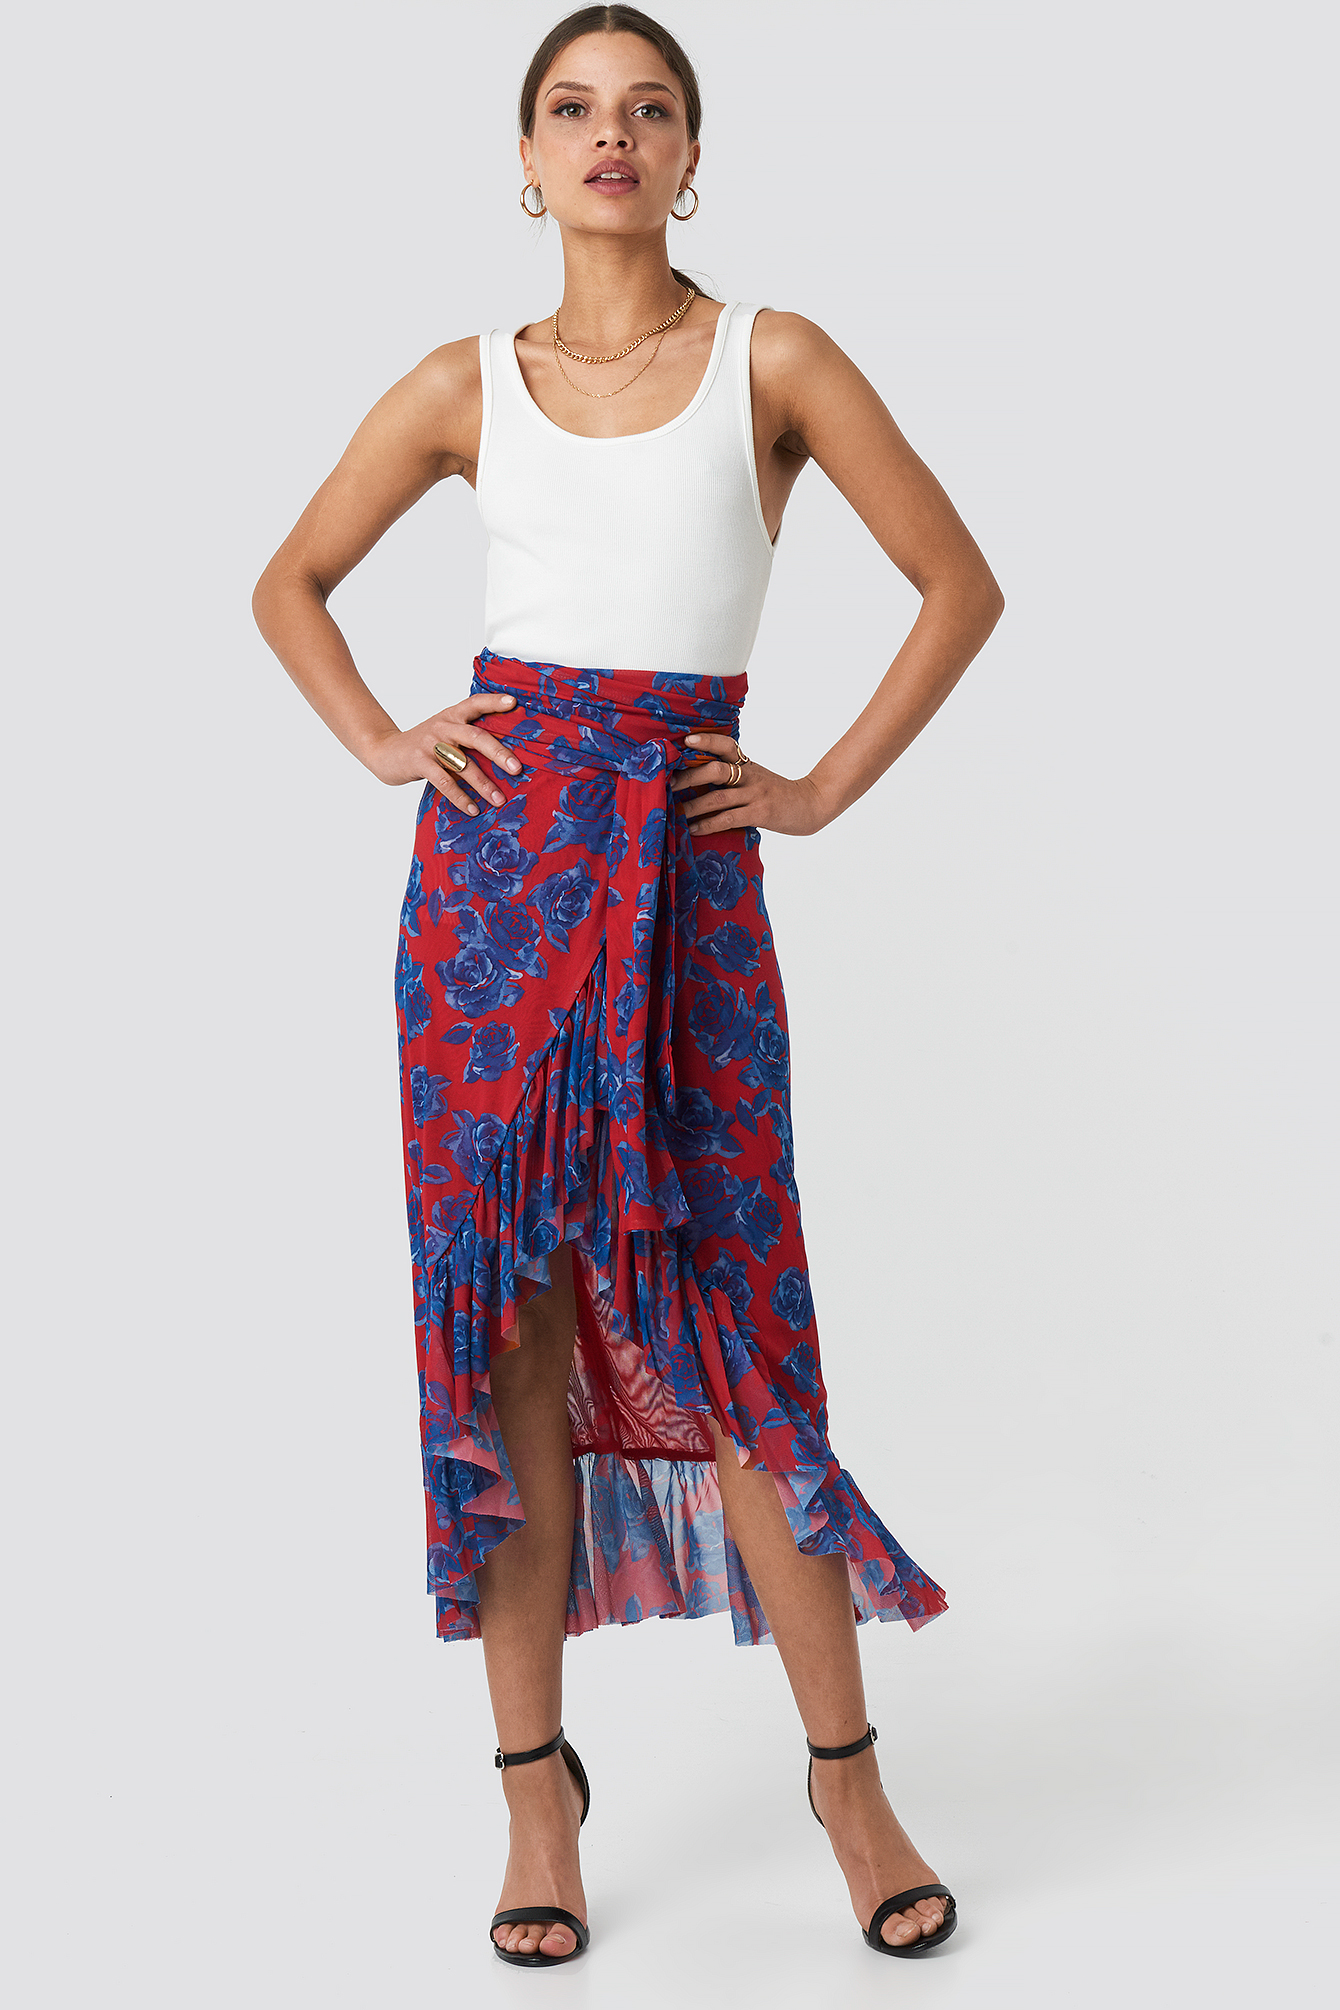 na-kd trend -  Mesh Overlap Maxi Skirt - Red,Multicolor